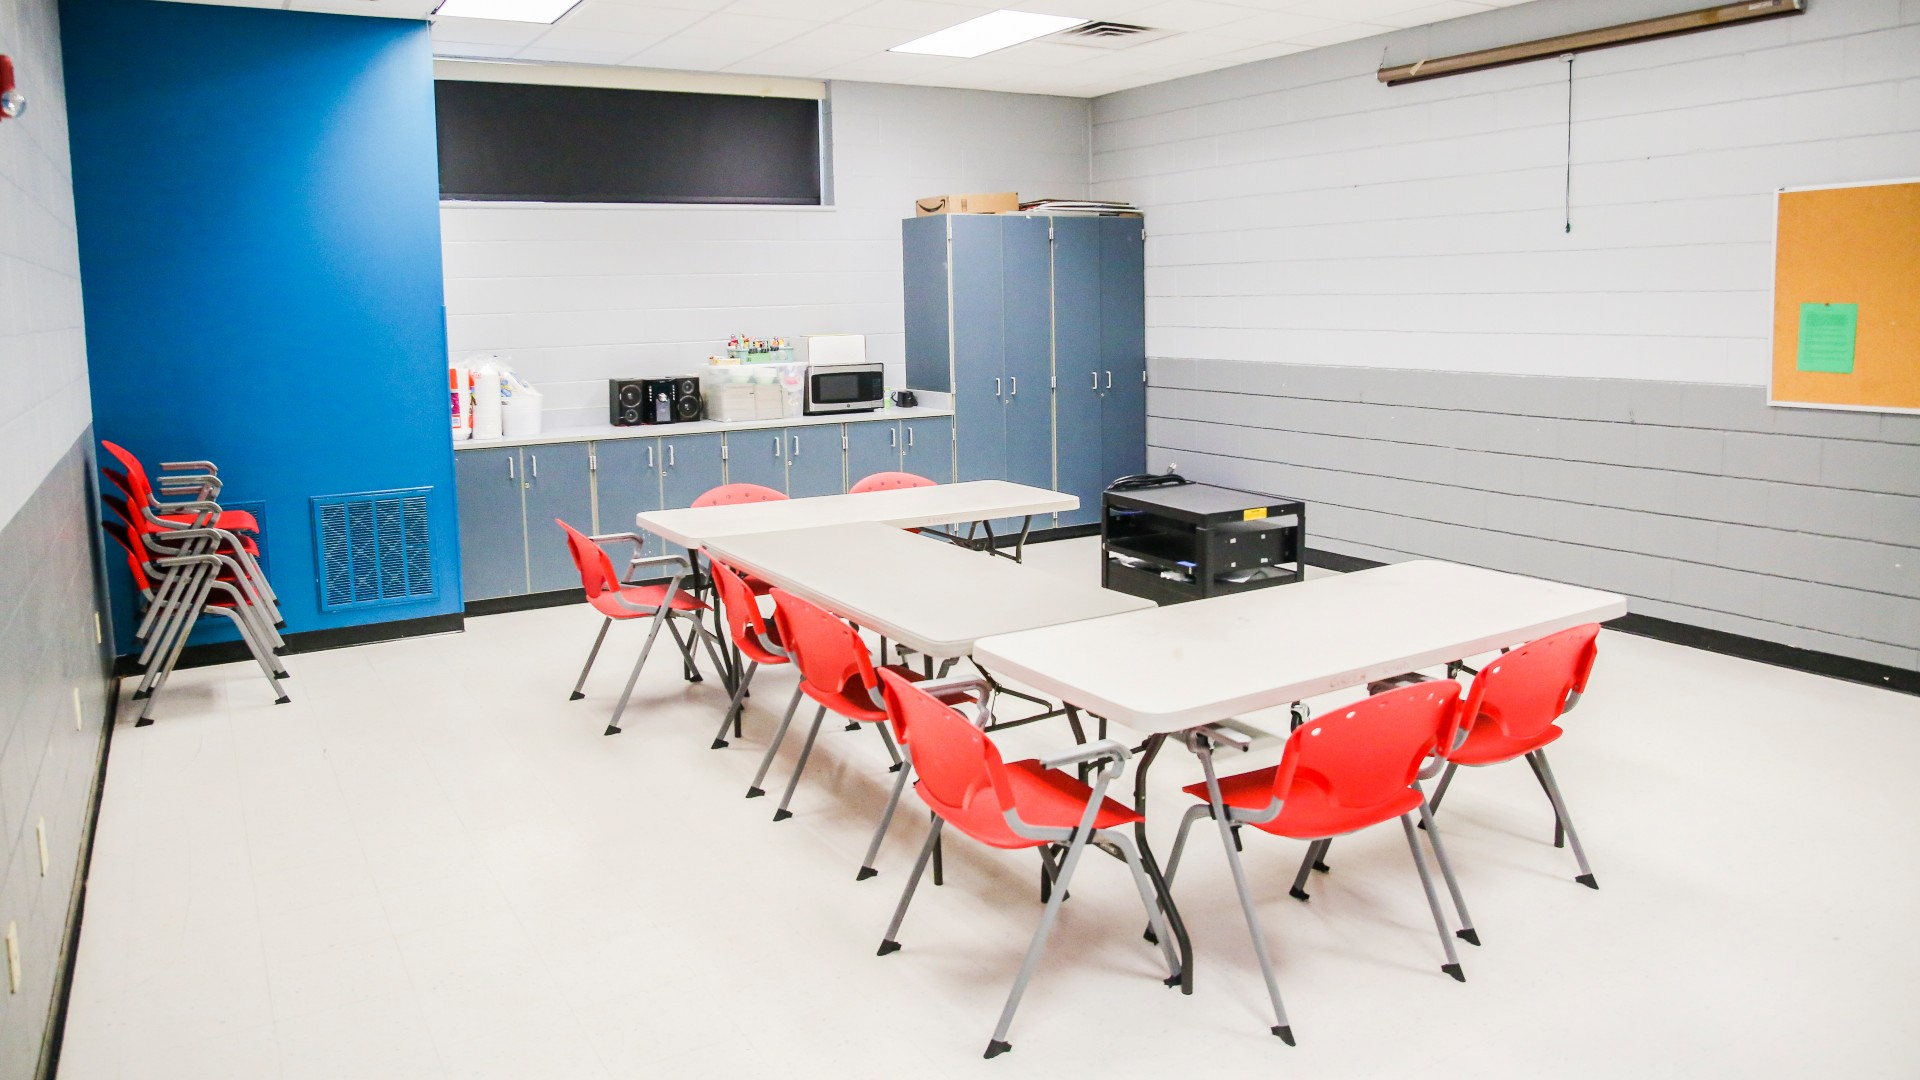 A smaller classroom at Green Road Park with chairs around a table and counterspace